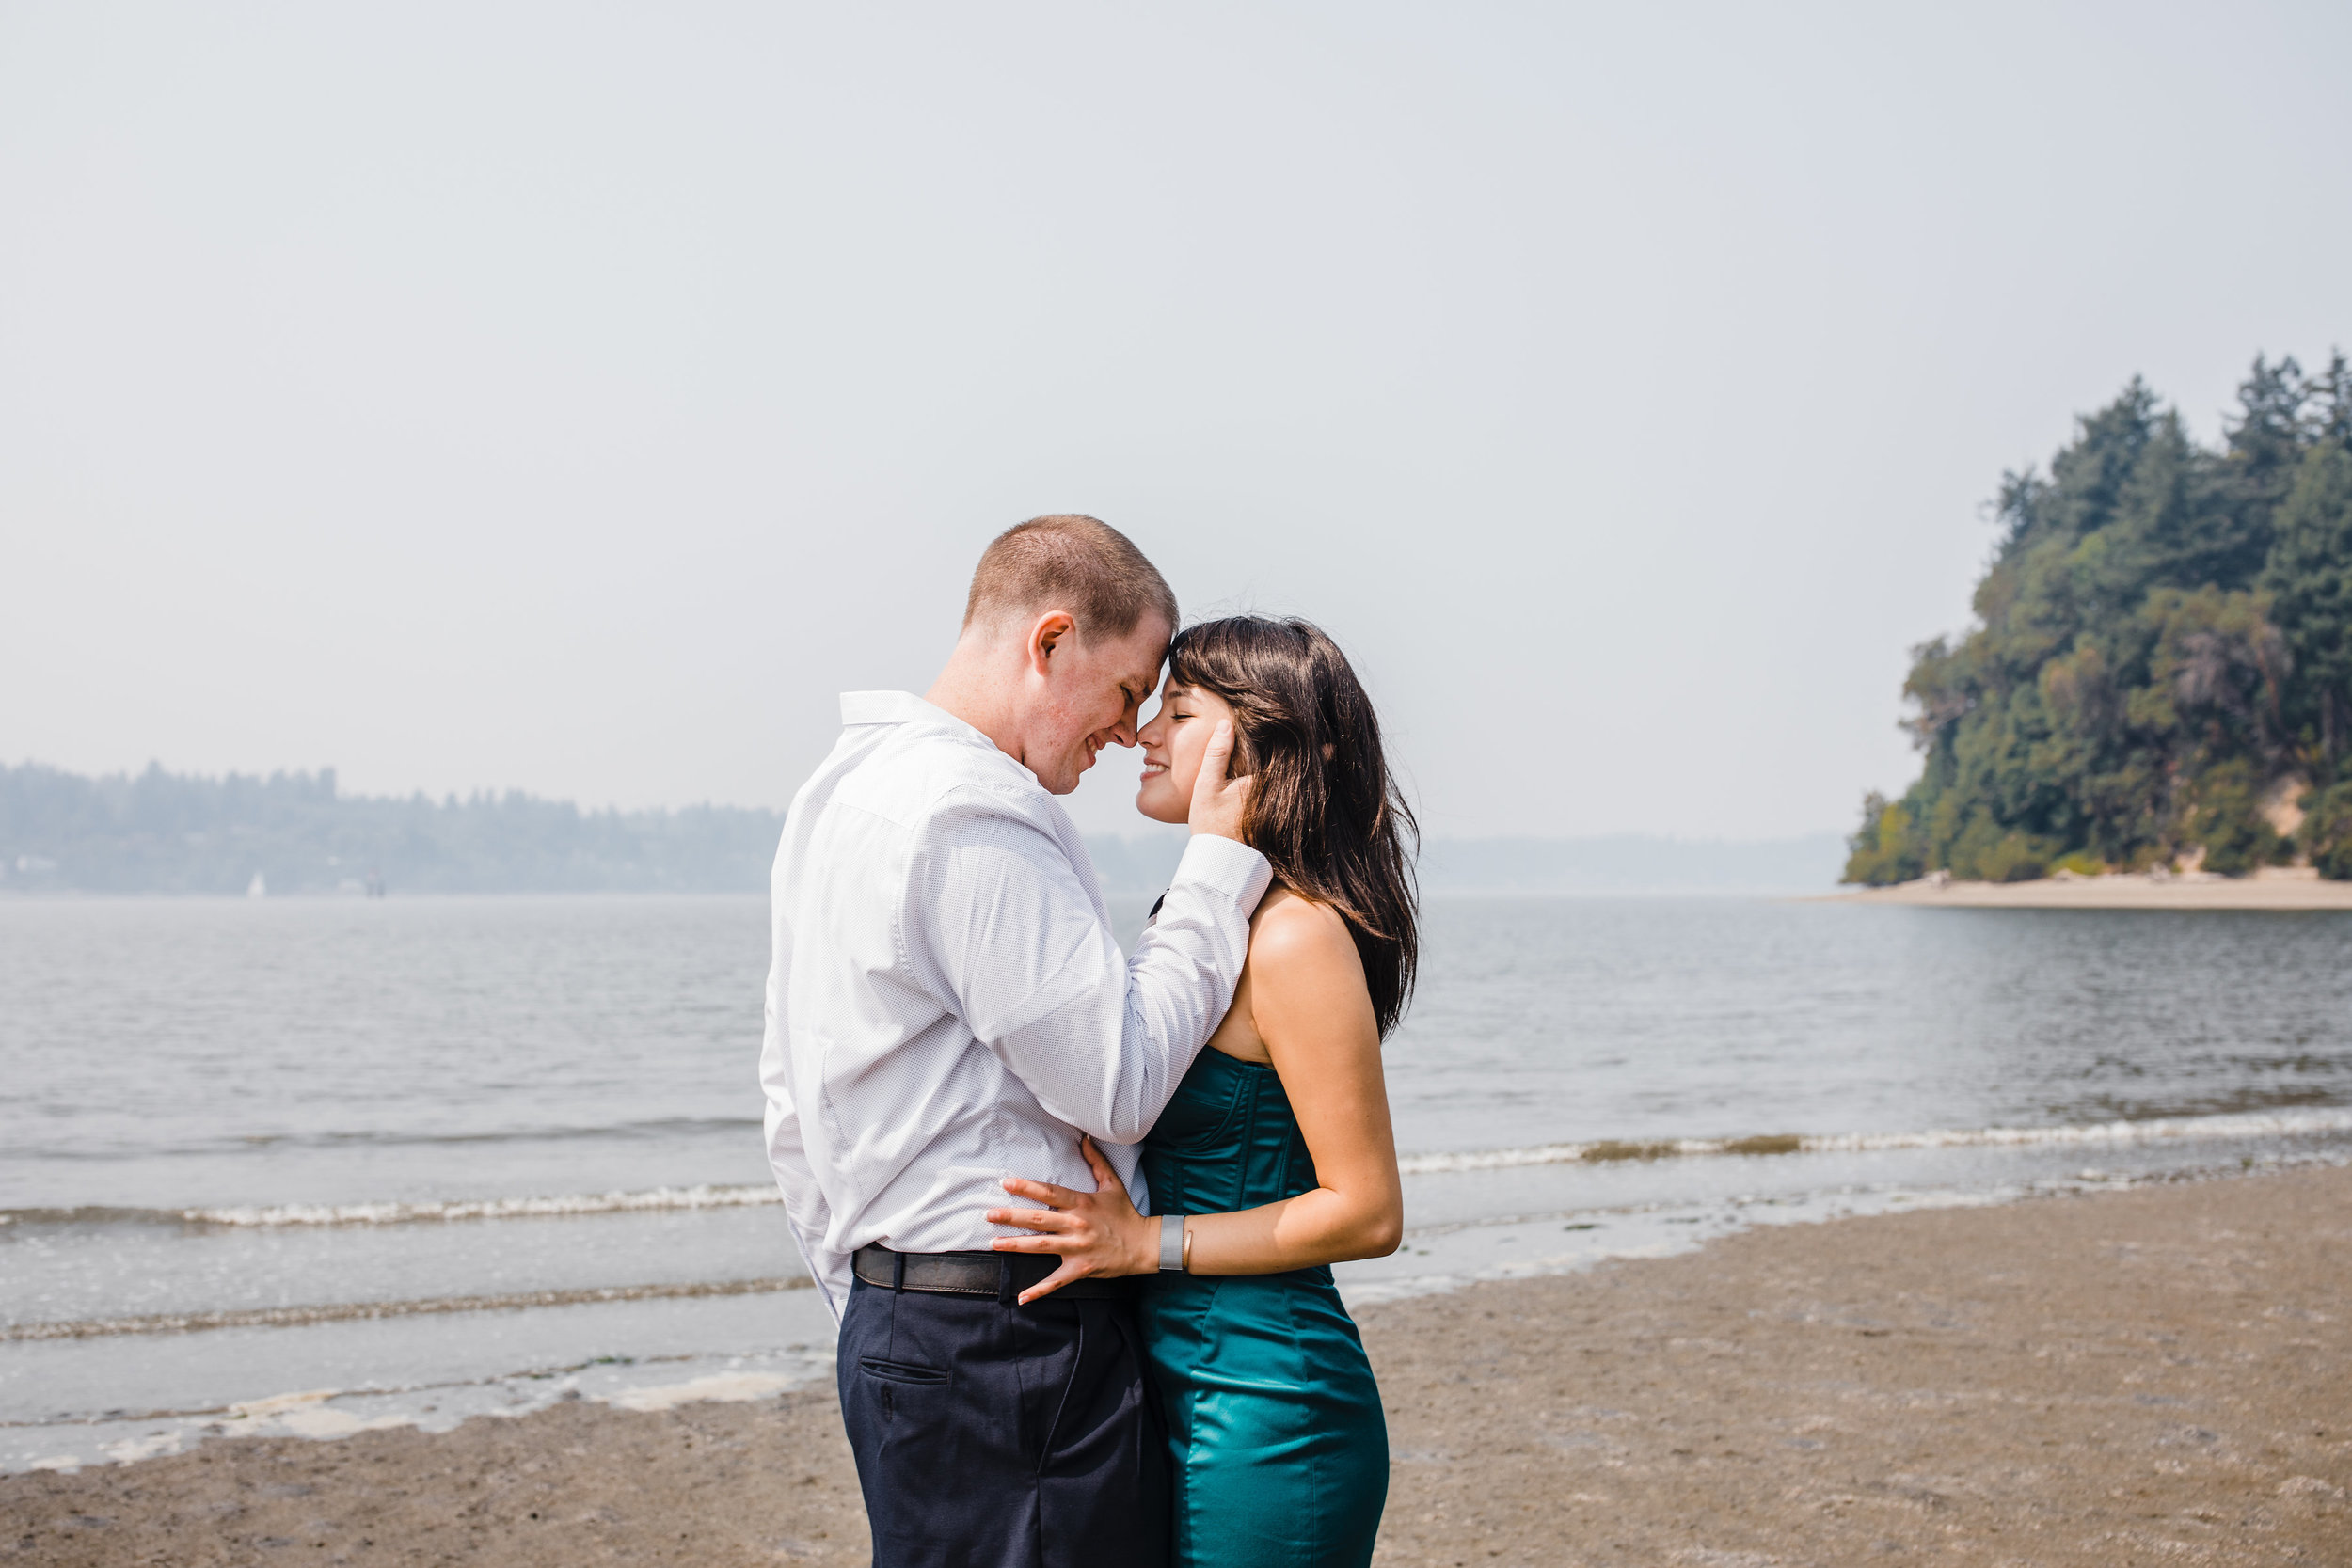 best professional engagement photographer in olympia washington beach kissing holding romantic sunset